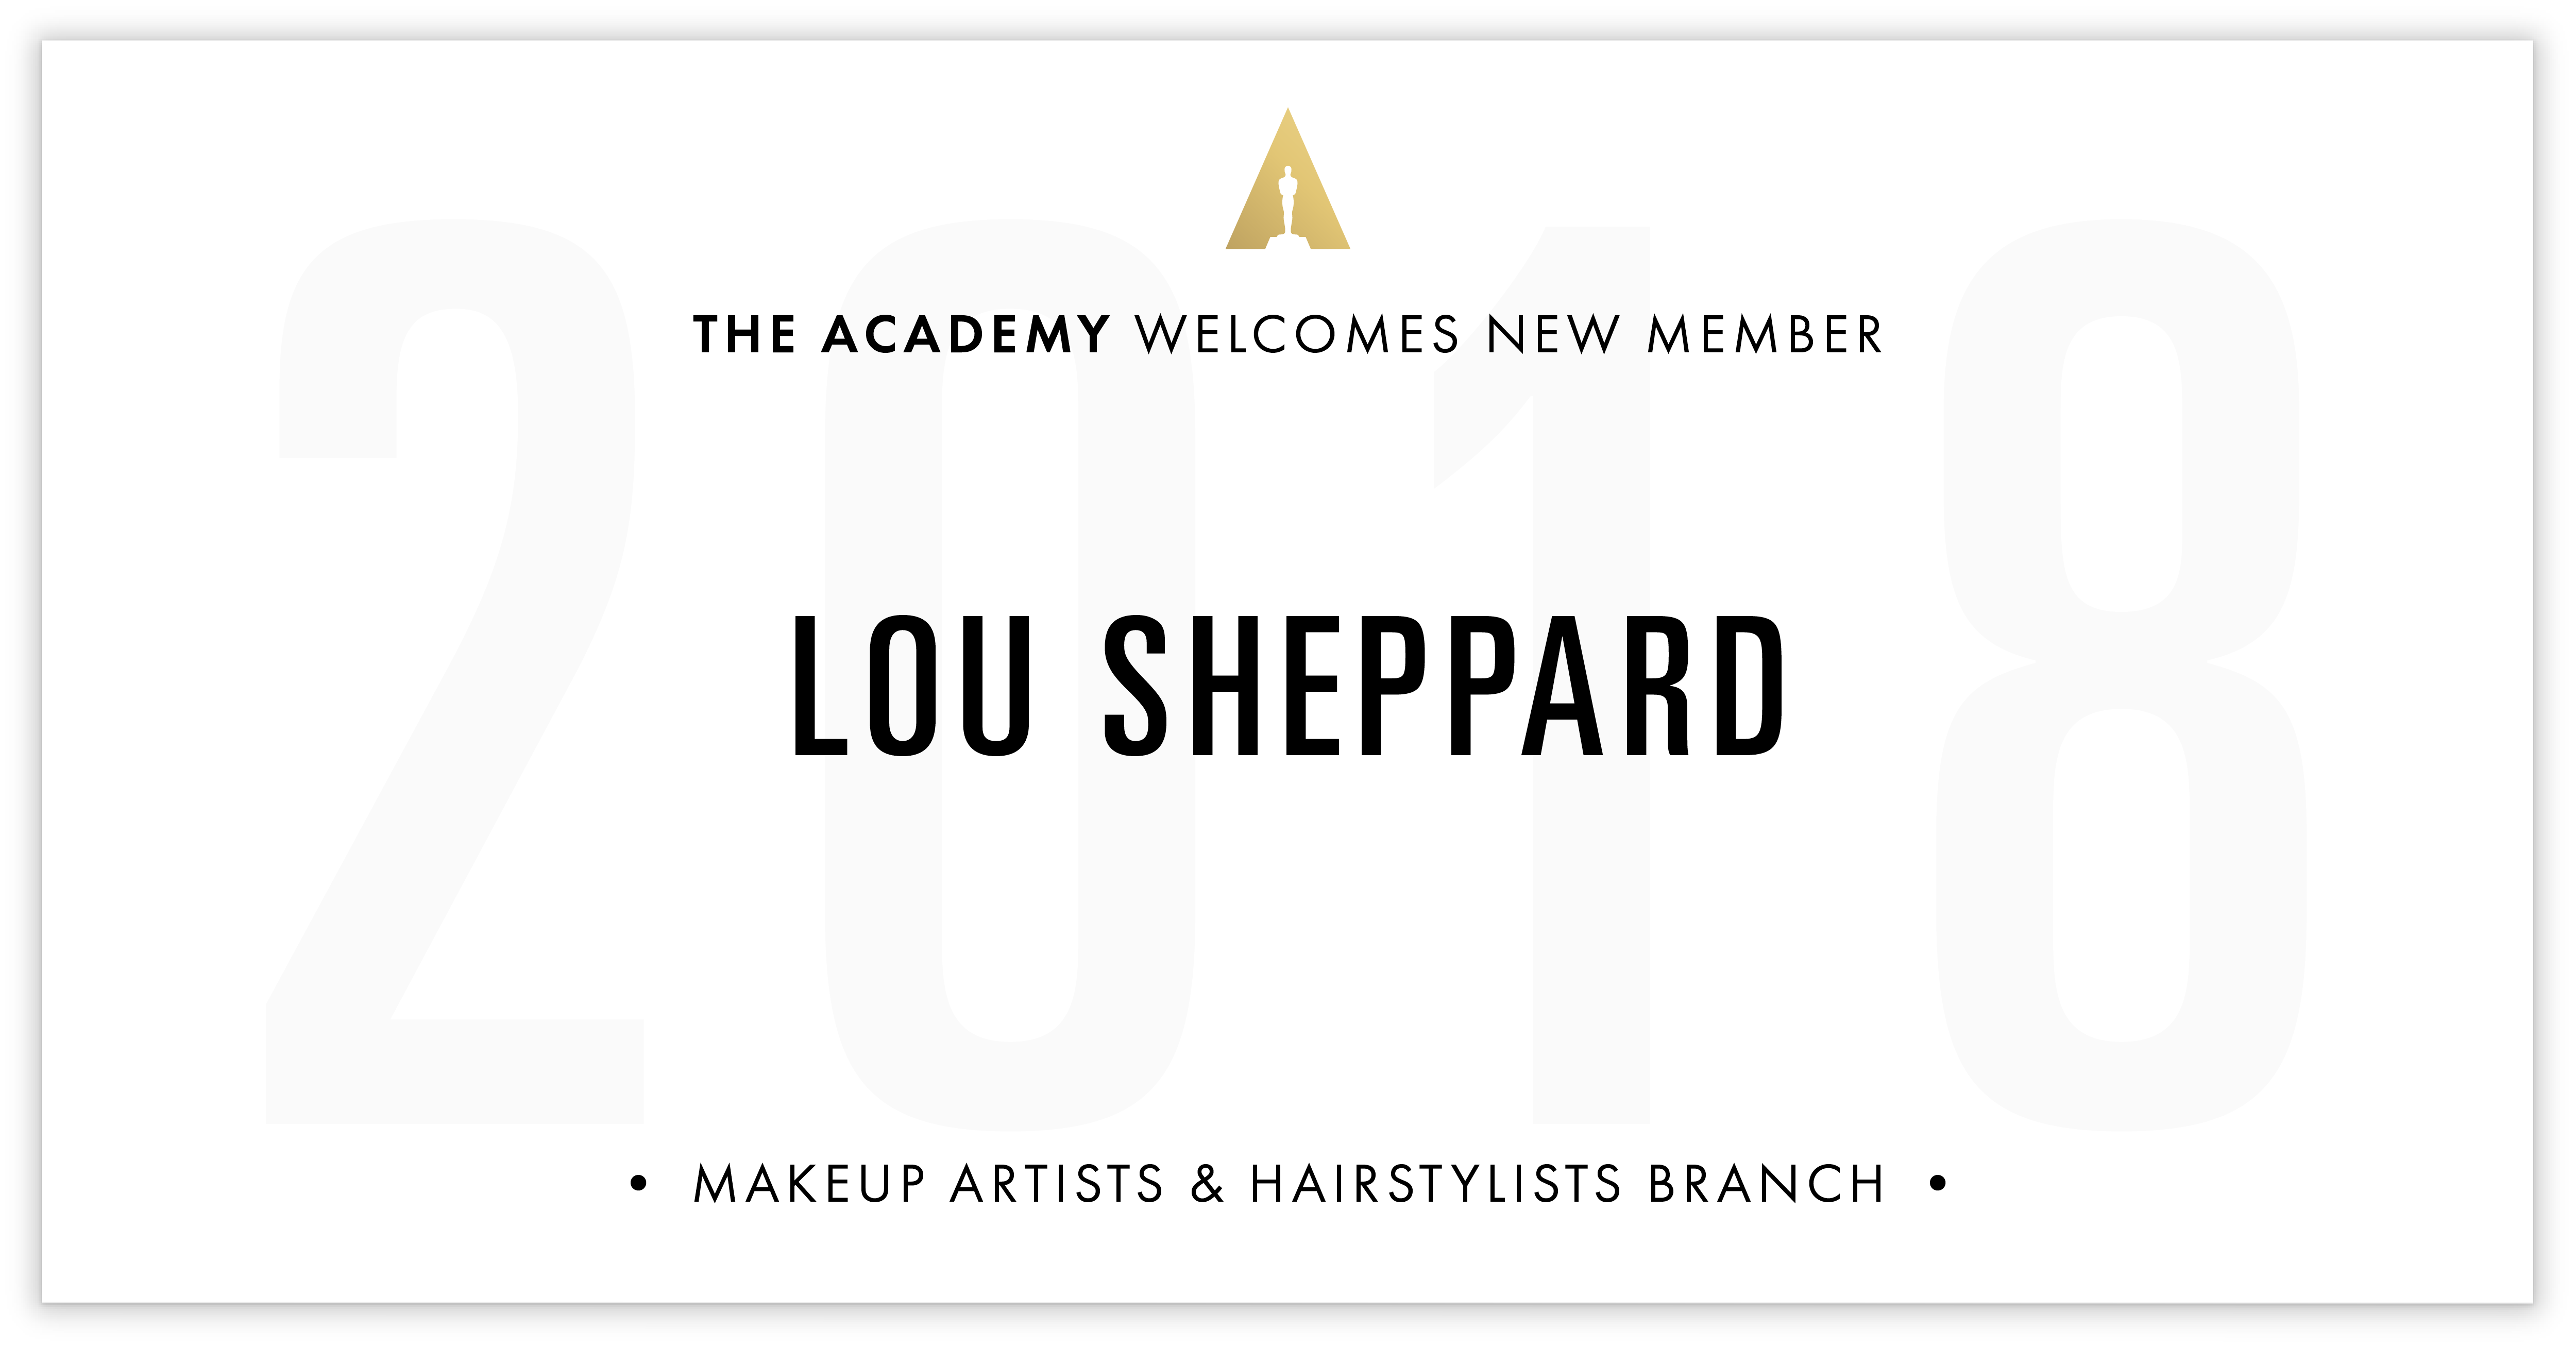 Lou Sheppard is invited!